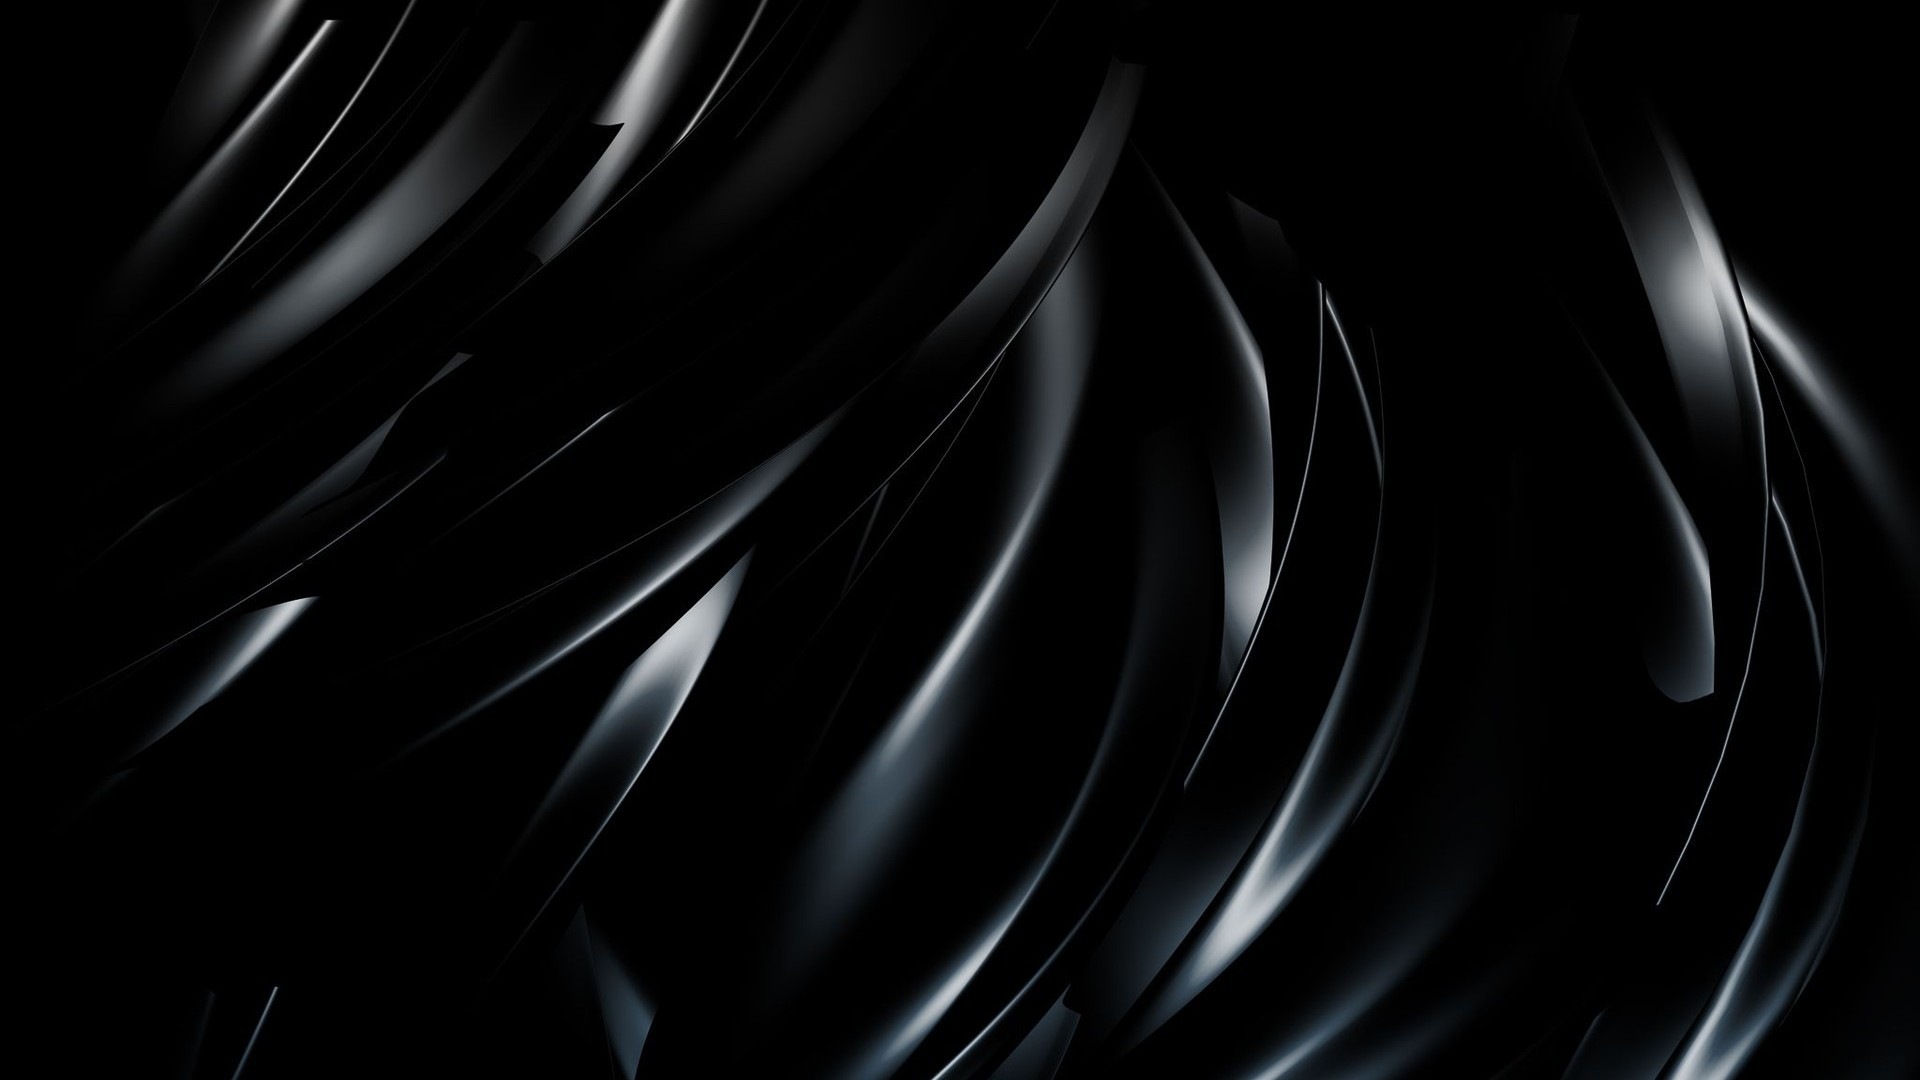 Black Wallpaper Hd 1920x1080 Pixelstalk Net